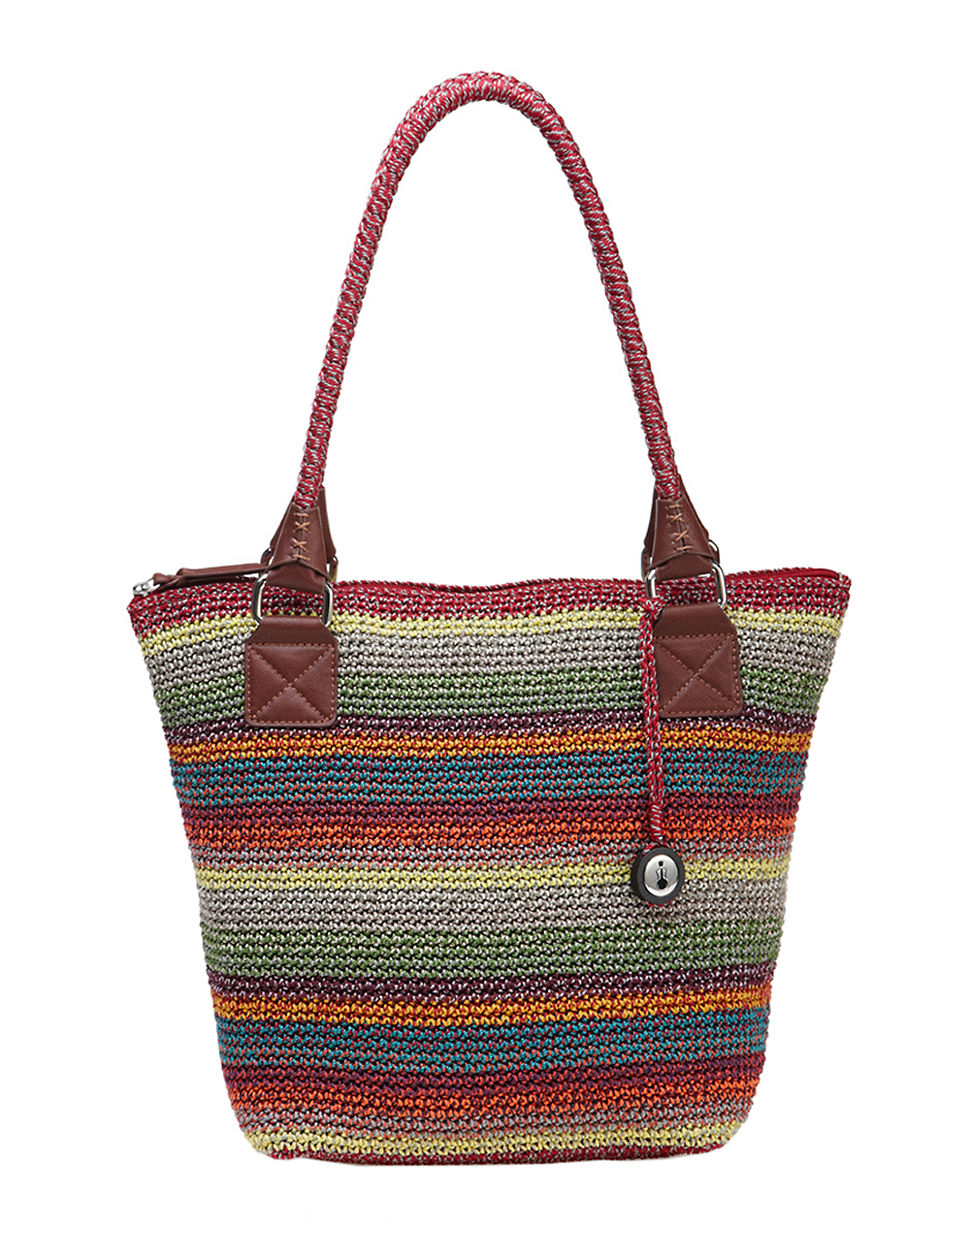 The Sak Bags Crochet : The Sak Cambria Crochet Large Tote in Brown (GYPSY STRIPE) Lyst